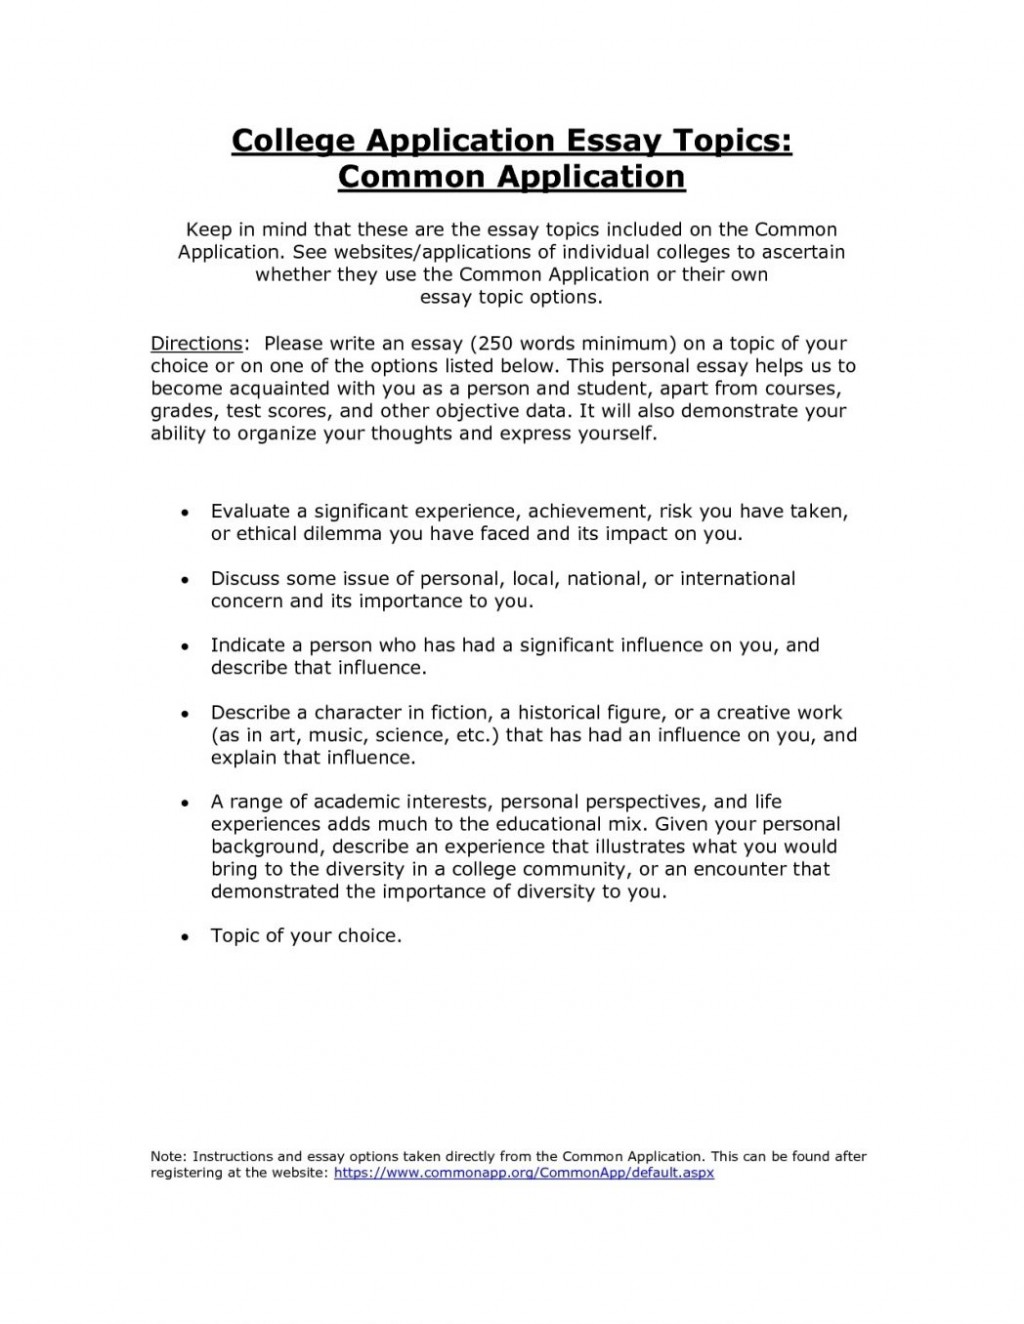 010 Common Application Essay Format Revive210618 Com College Examples Commonapp Ecza Solinf Co Texas Essayss Admission Topics Length 1048x1356 Example App Unusual Prompt 1 3 4 Large